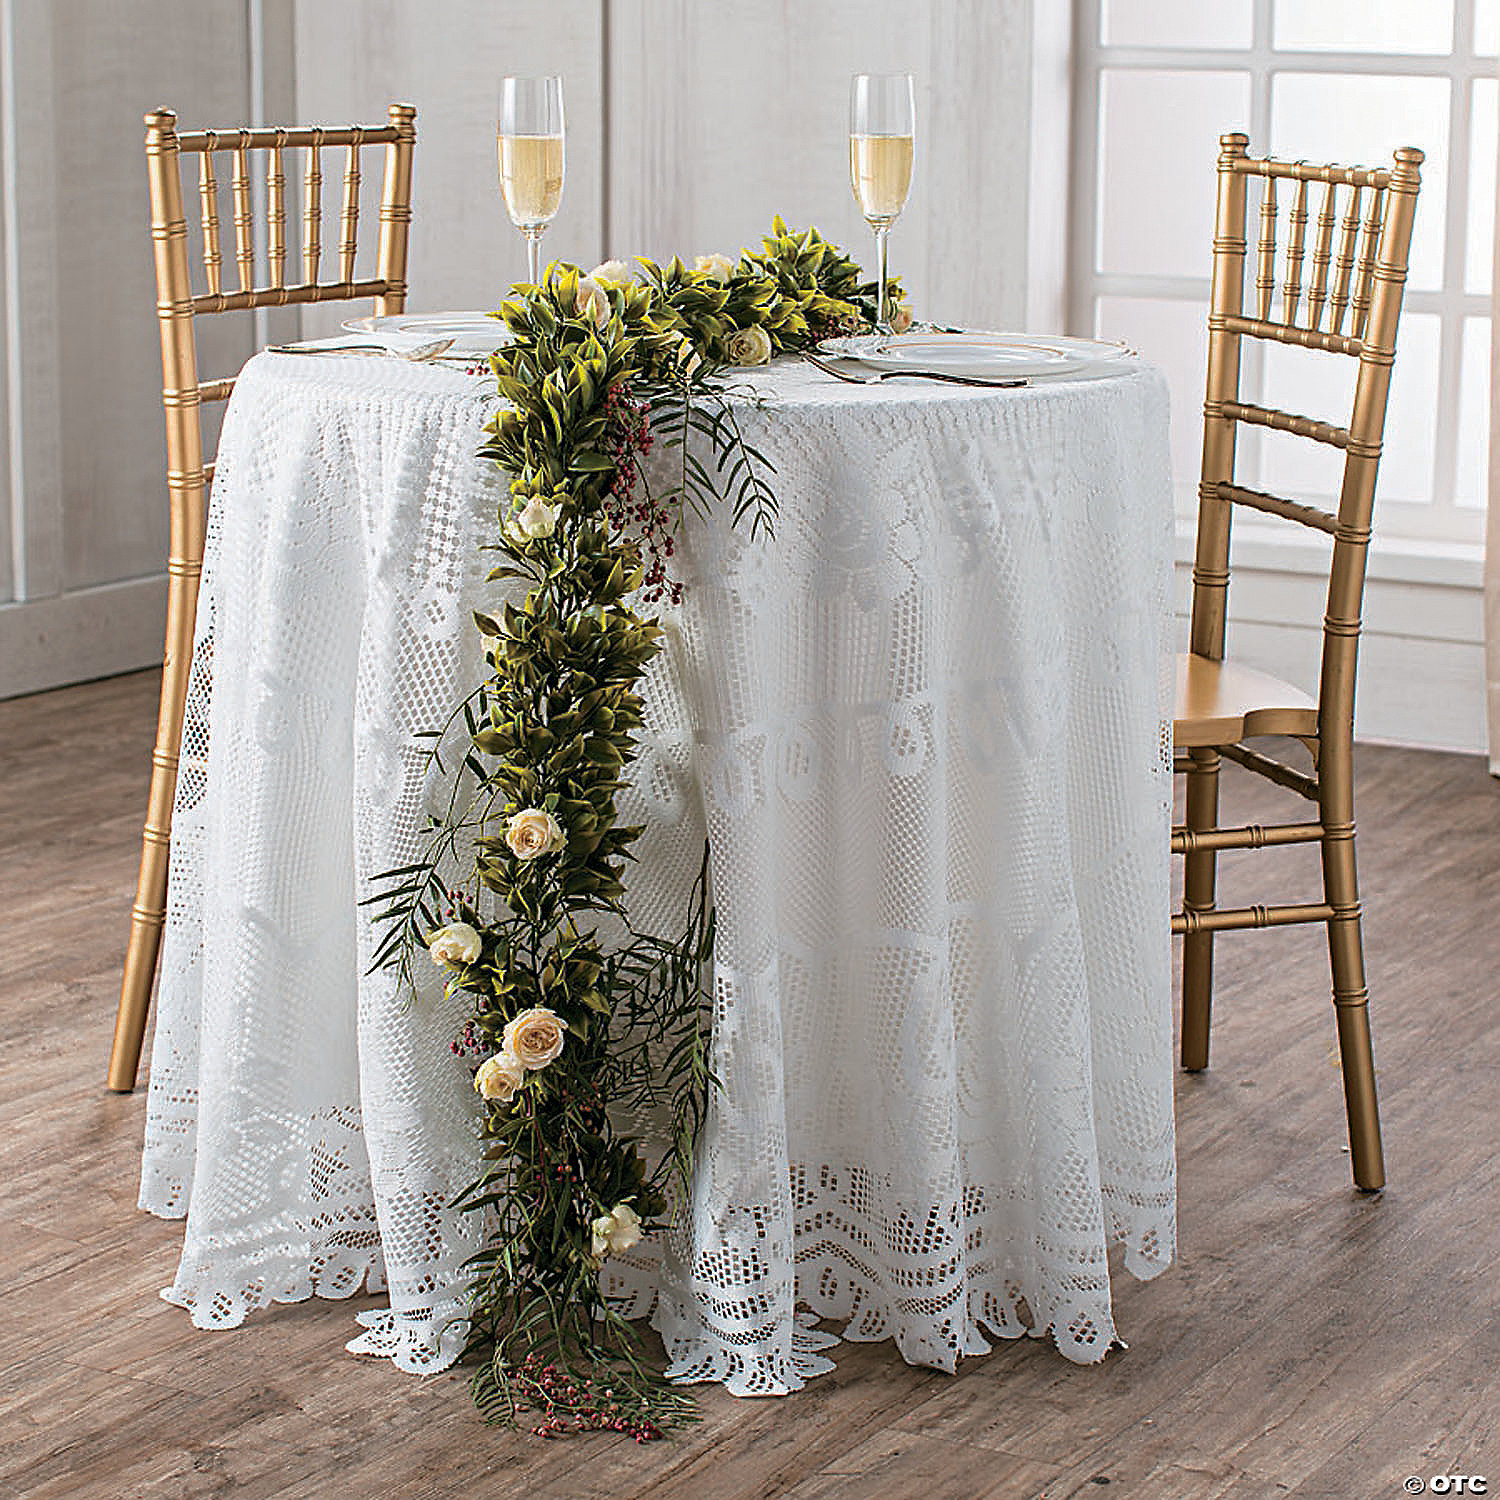 Round White Lace Tablecloth Oriental, Round White Tablecloth